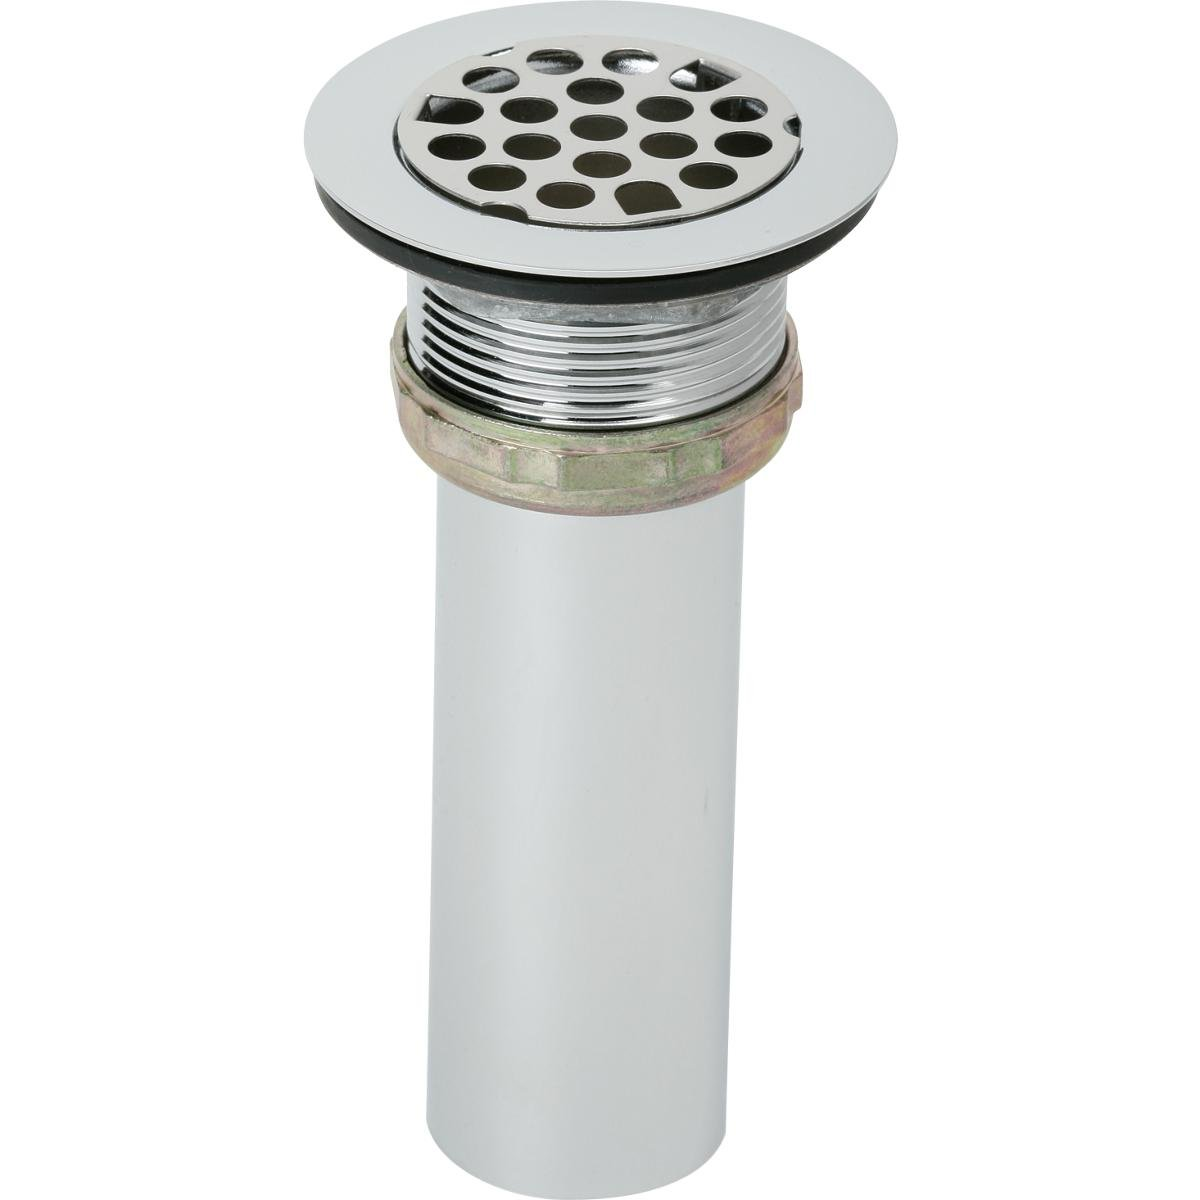 Elkay LK8 2'' Drain Fitting with Type 304 Stainless Steel Body, Grid Strainer, and Tailpiece